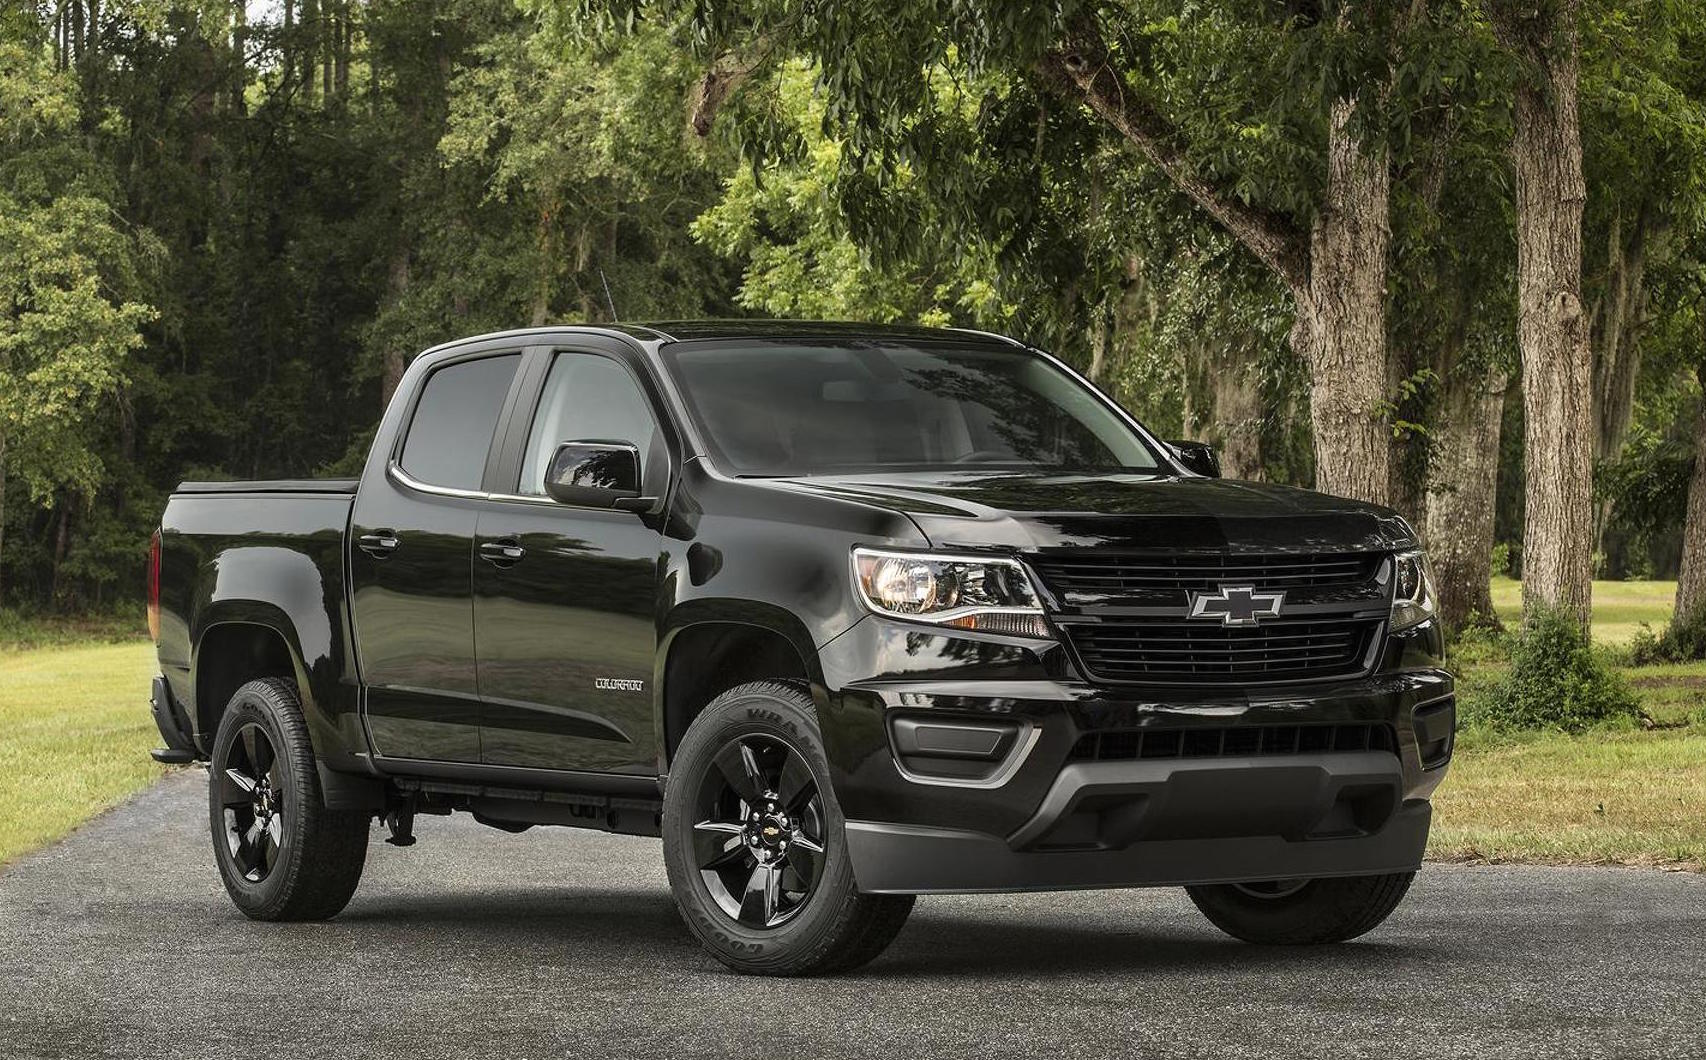 2017 chevrolet colorado debuts new 230kw v6 8spd auto performancedrive. Black Bedroom Furniture Sets. Home Design Ideas